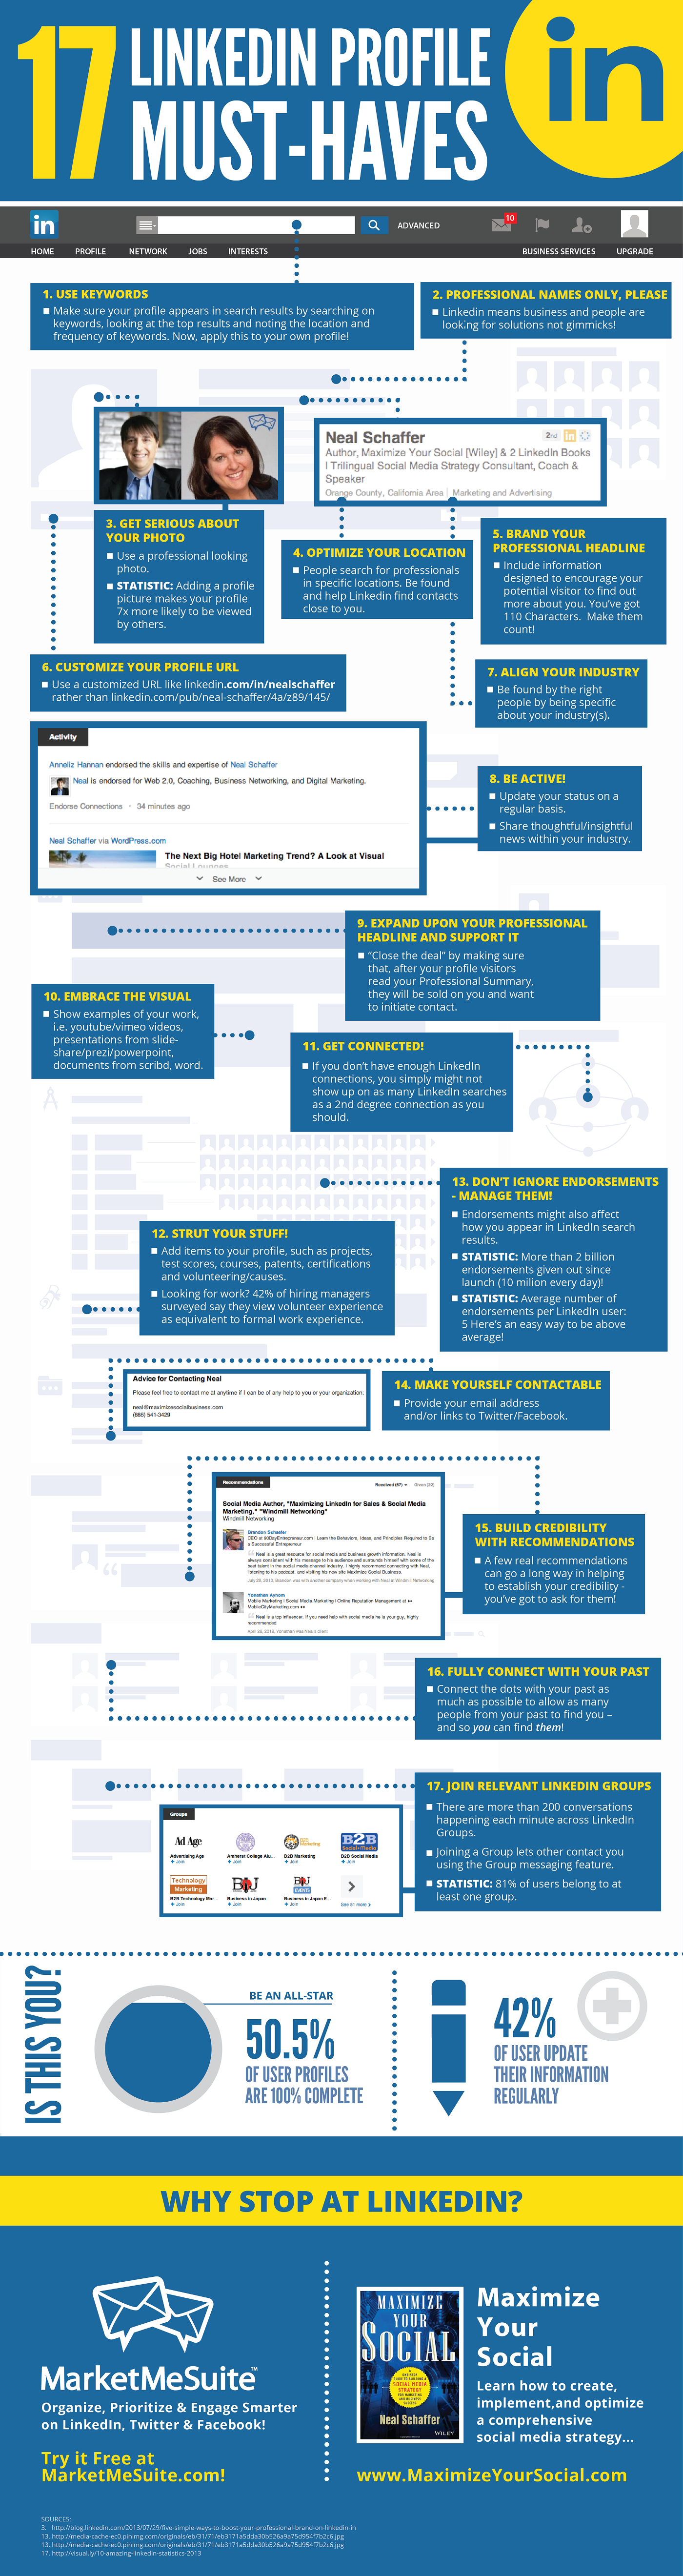 17 Must-Haves for Your #LinkedIn Profile - #infographic